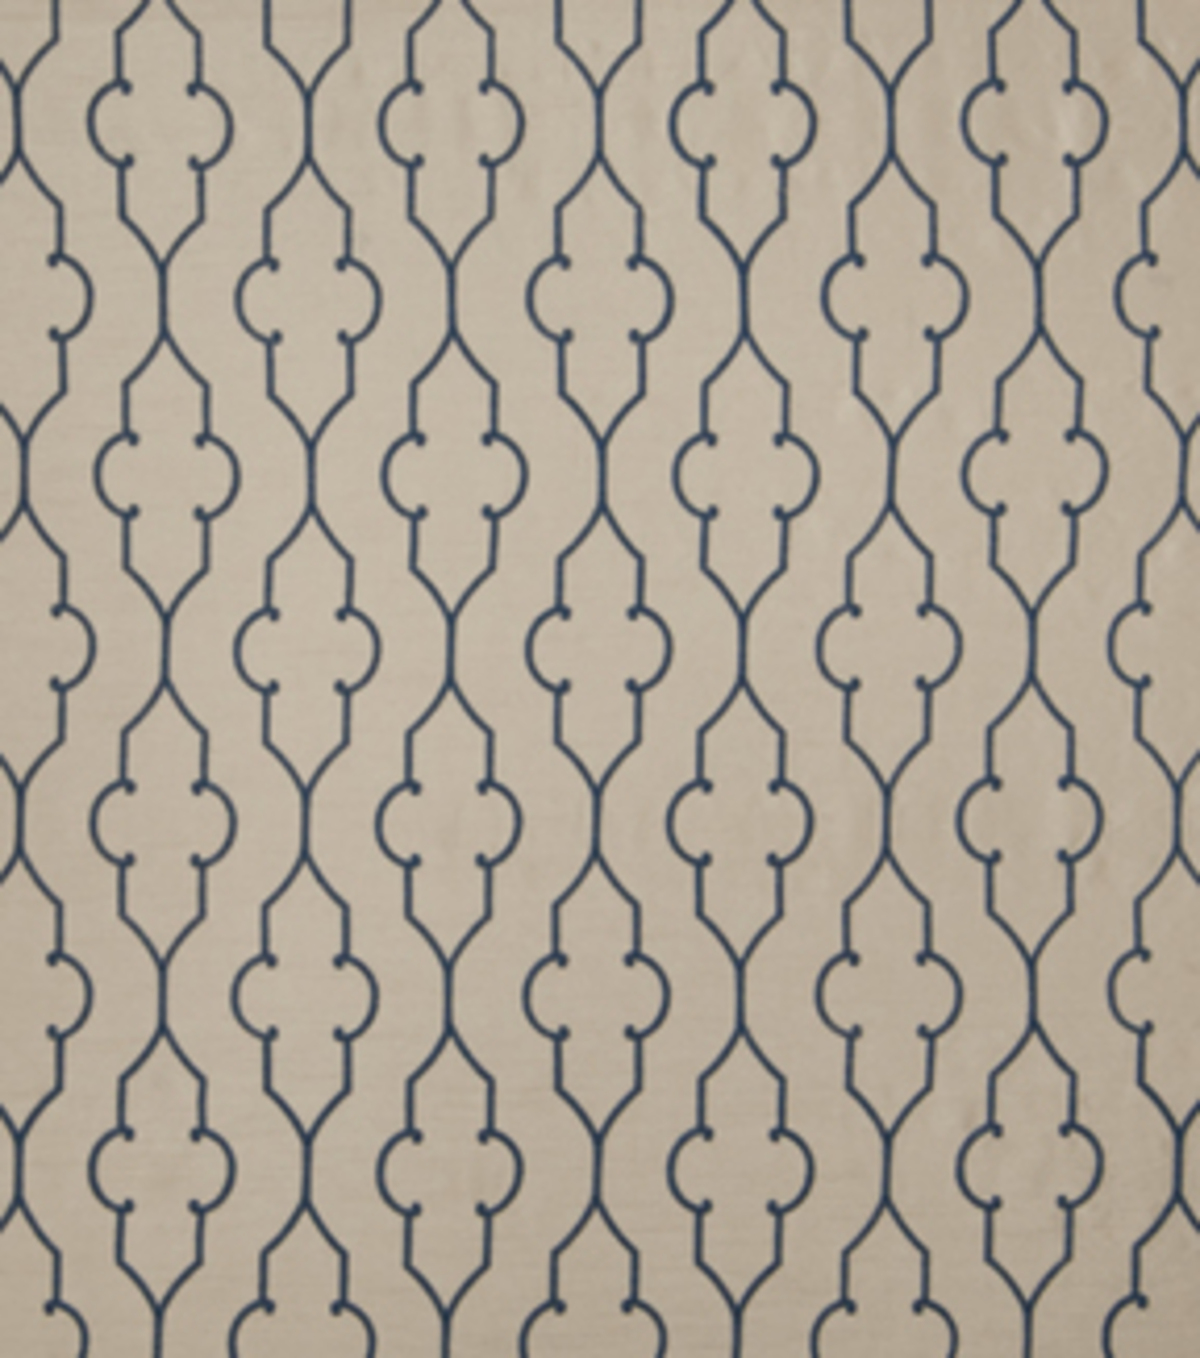 Home Decor 8\u0022x8\u0022 Fabric Swatch-Eaton Square Crane Royal